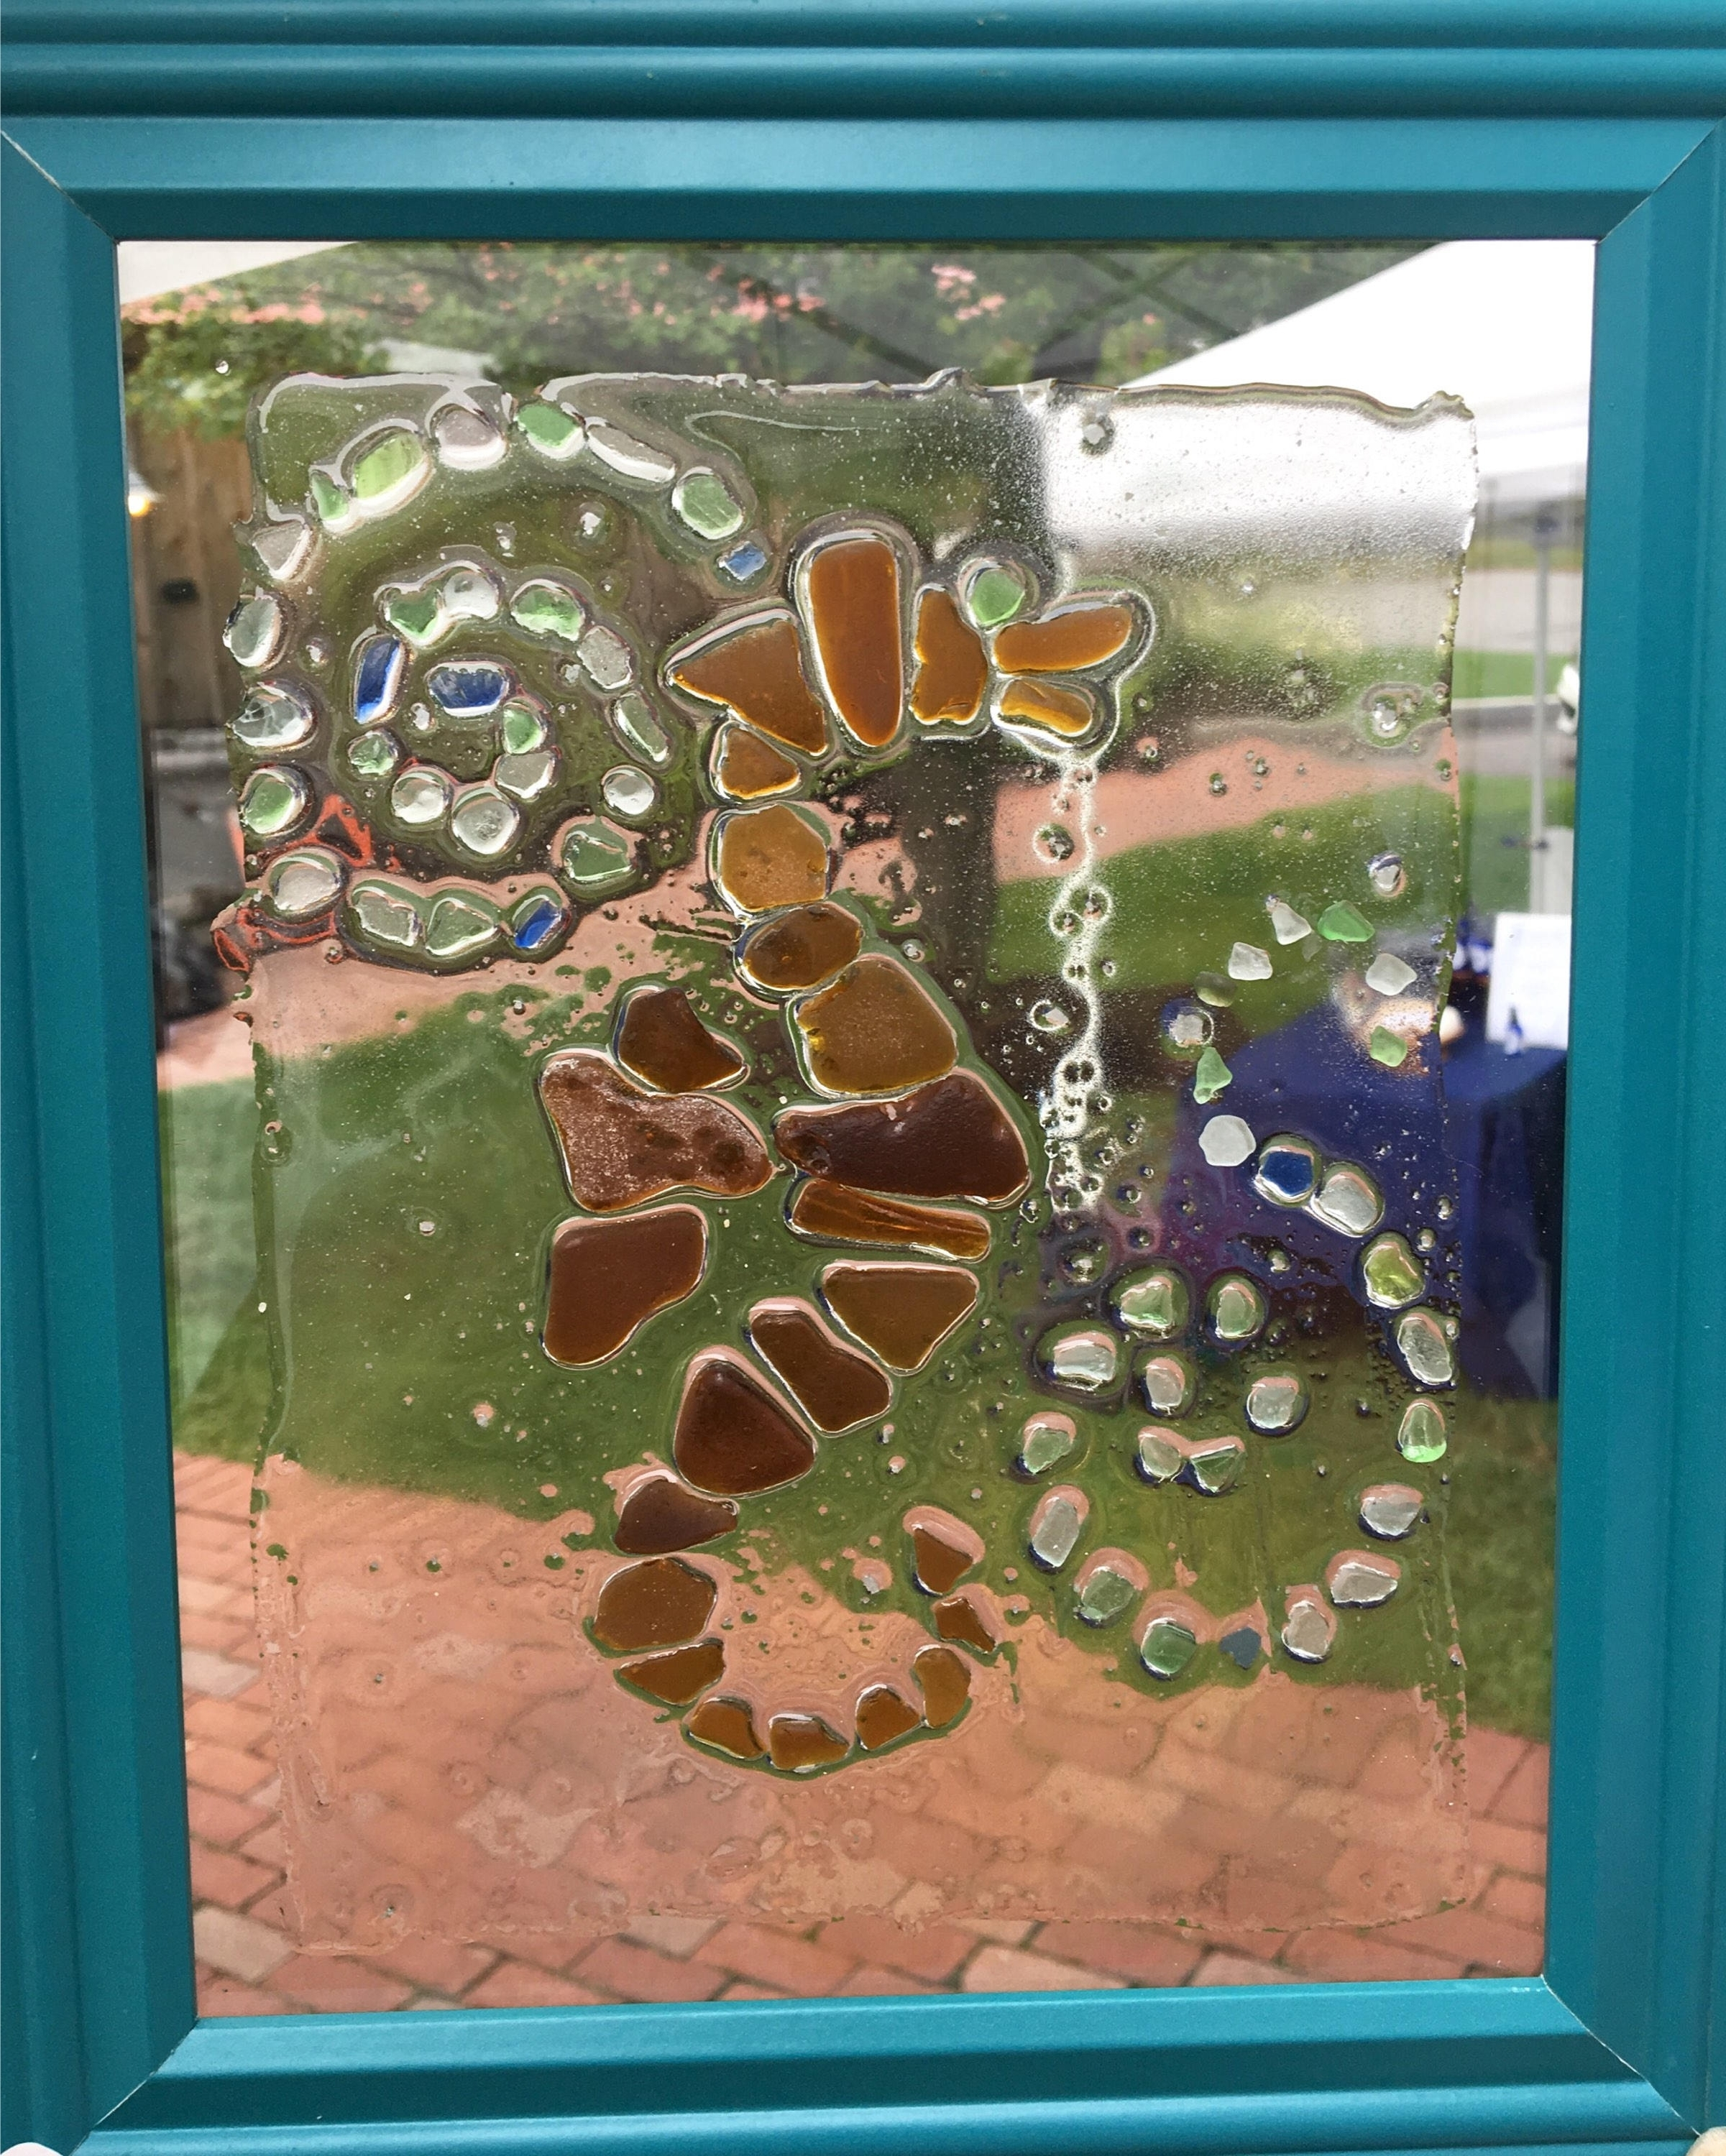 Sea Glass Wall Art Throughout Favorite Sea Glass Wall Art: Seahorse Design Made From Genuine Sea Glass 8X (View 13 of 15)